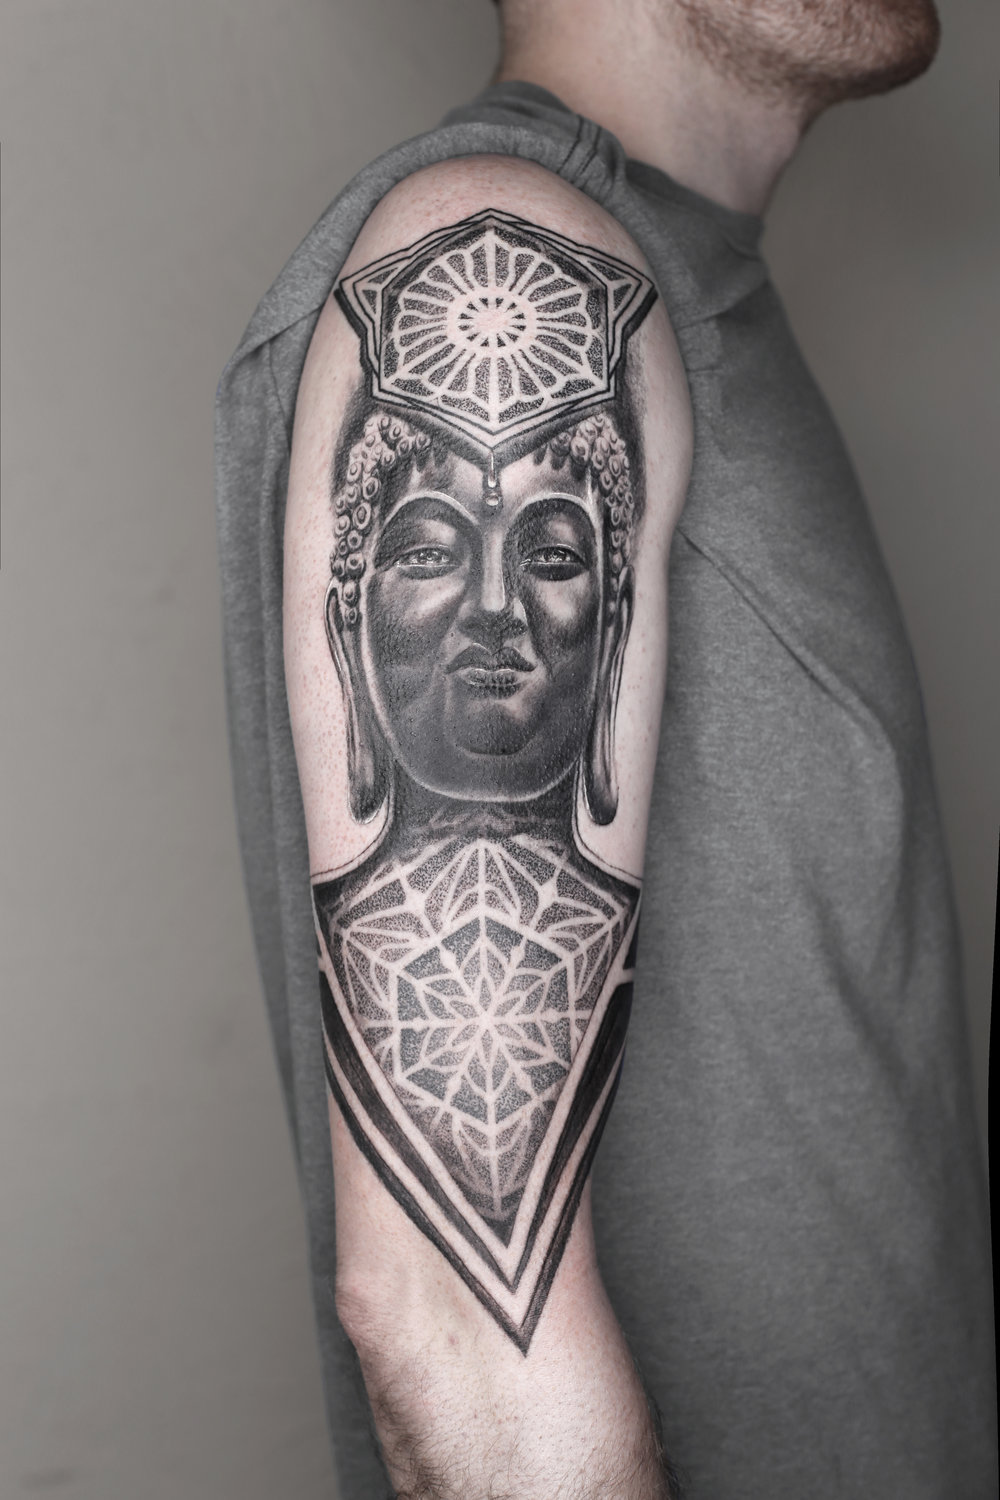 buddah ejay tattoo dalls texas singleton tattoo ink master ink angel thomas hooper trinity groves .jpg